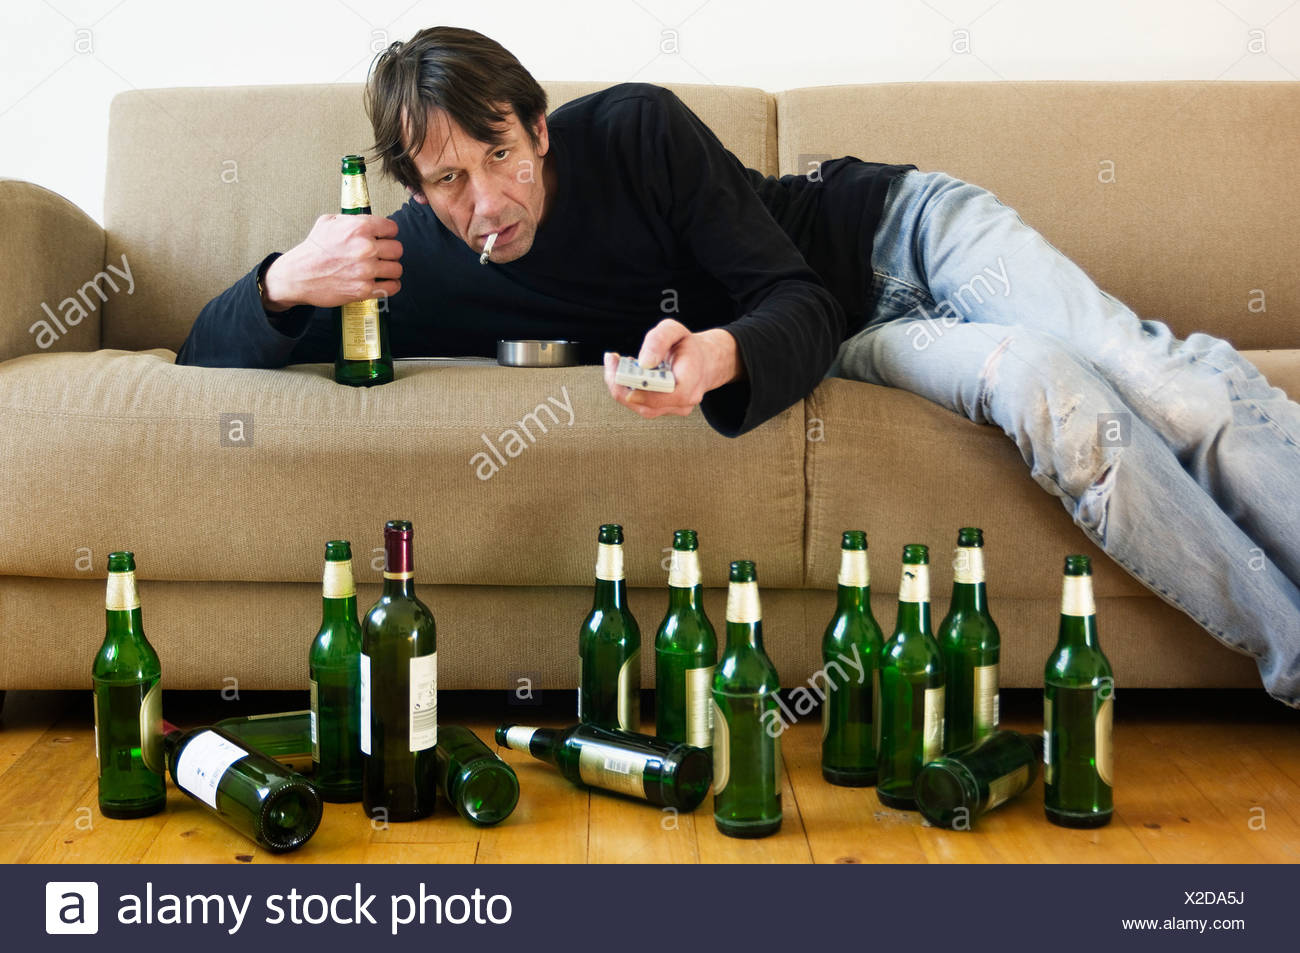 Sofa Frankfurt Germany Hessen Frankfurt Drunk Man Lying On Sofa With Empty